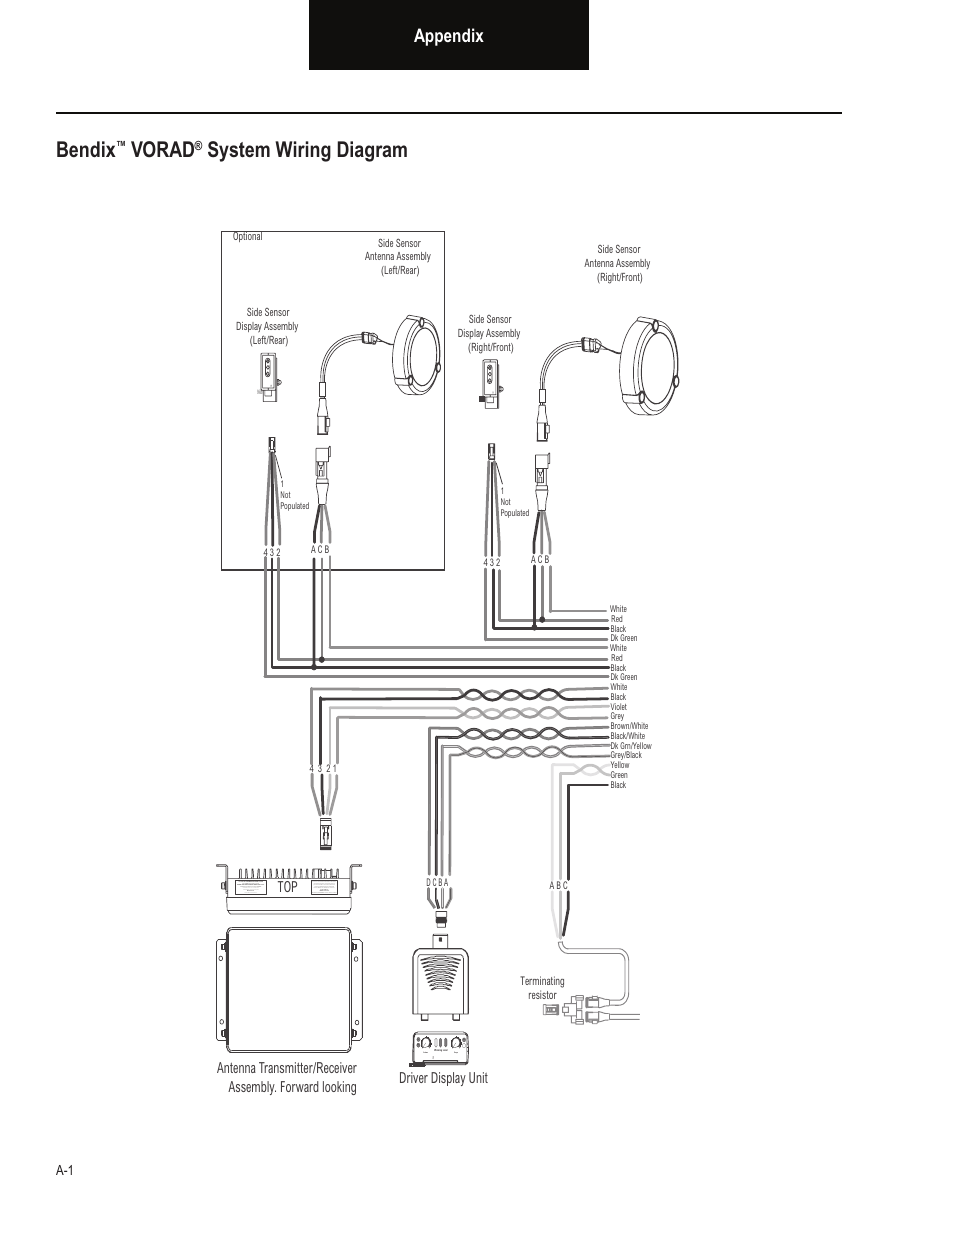 bendix, vorad, system wiring diagram | bendix commercial ... 327 chevy distributor cap wiring diagram